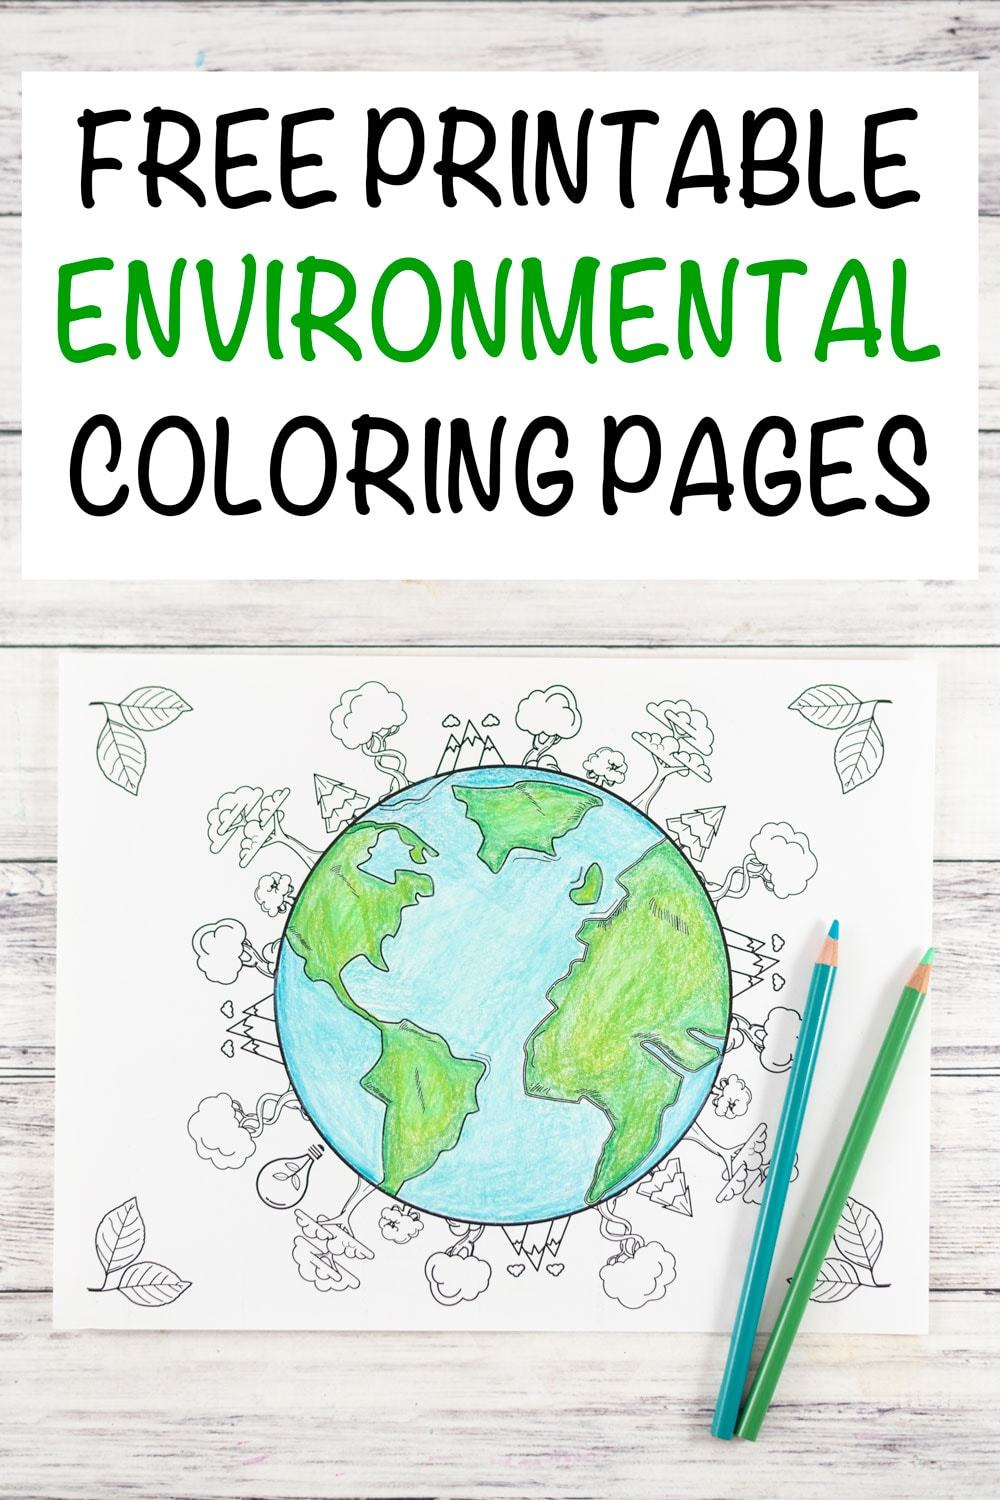 Free Printable Earth Day Coloring Pages And Activities 20 Earth Day And Environmental Coloring Pages The Artisan Life